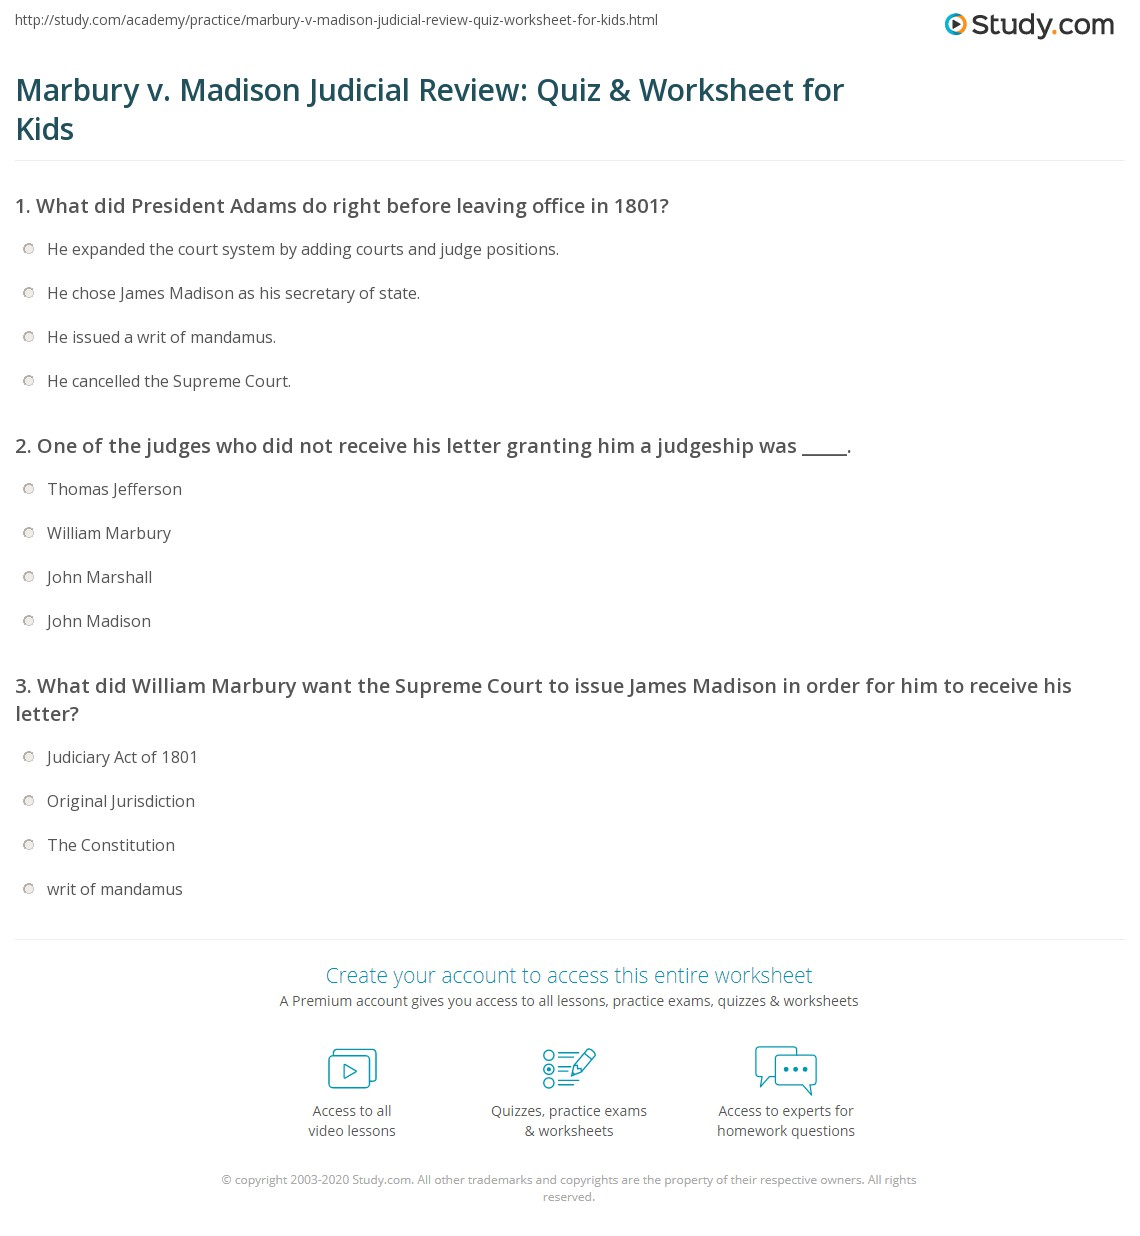 Worksheets Marbury V Madison Worksheet marbury v madison judicial review quiz worksheet for kids print lesson worksheet